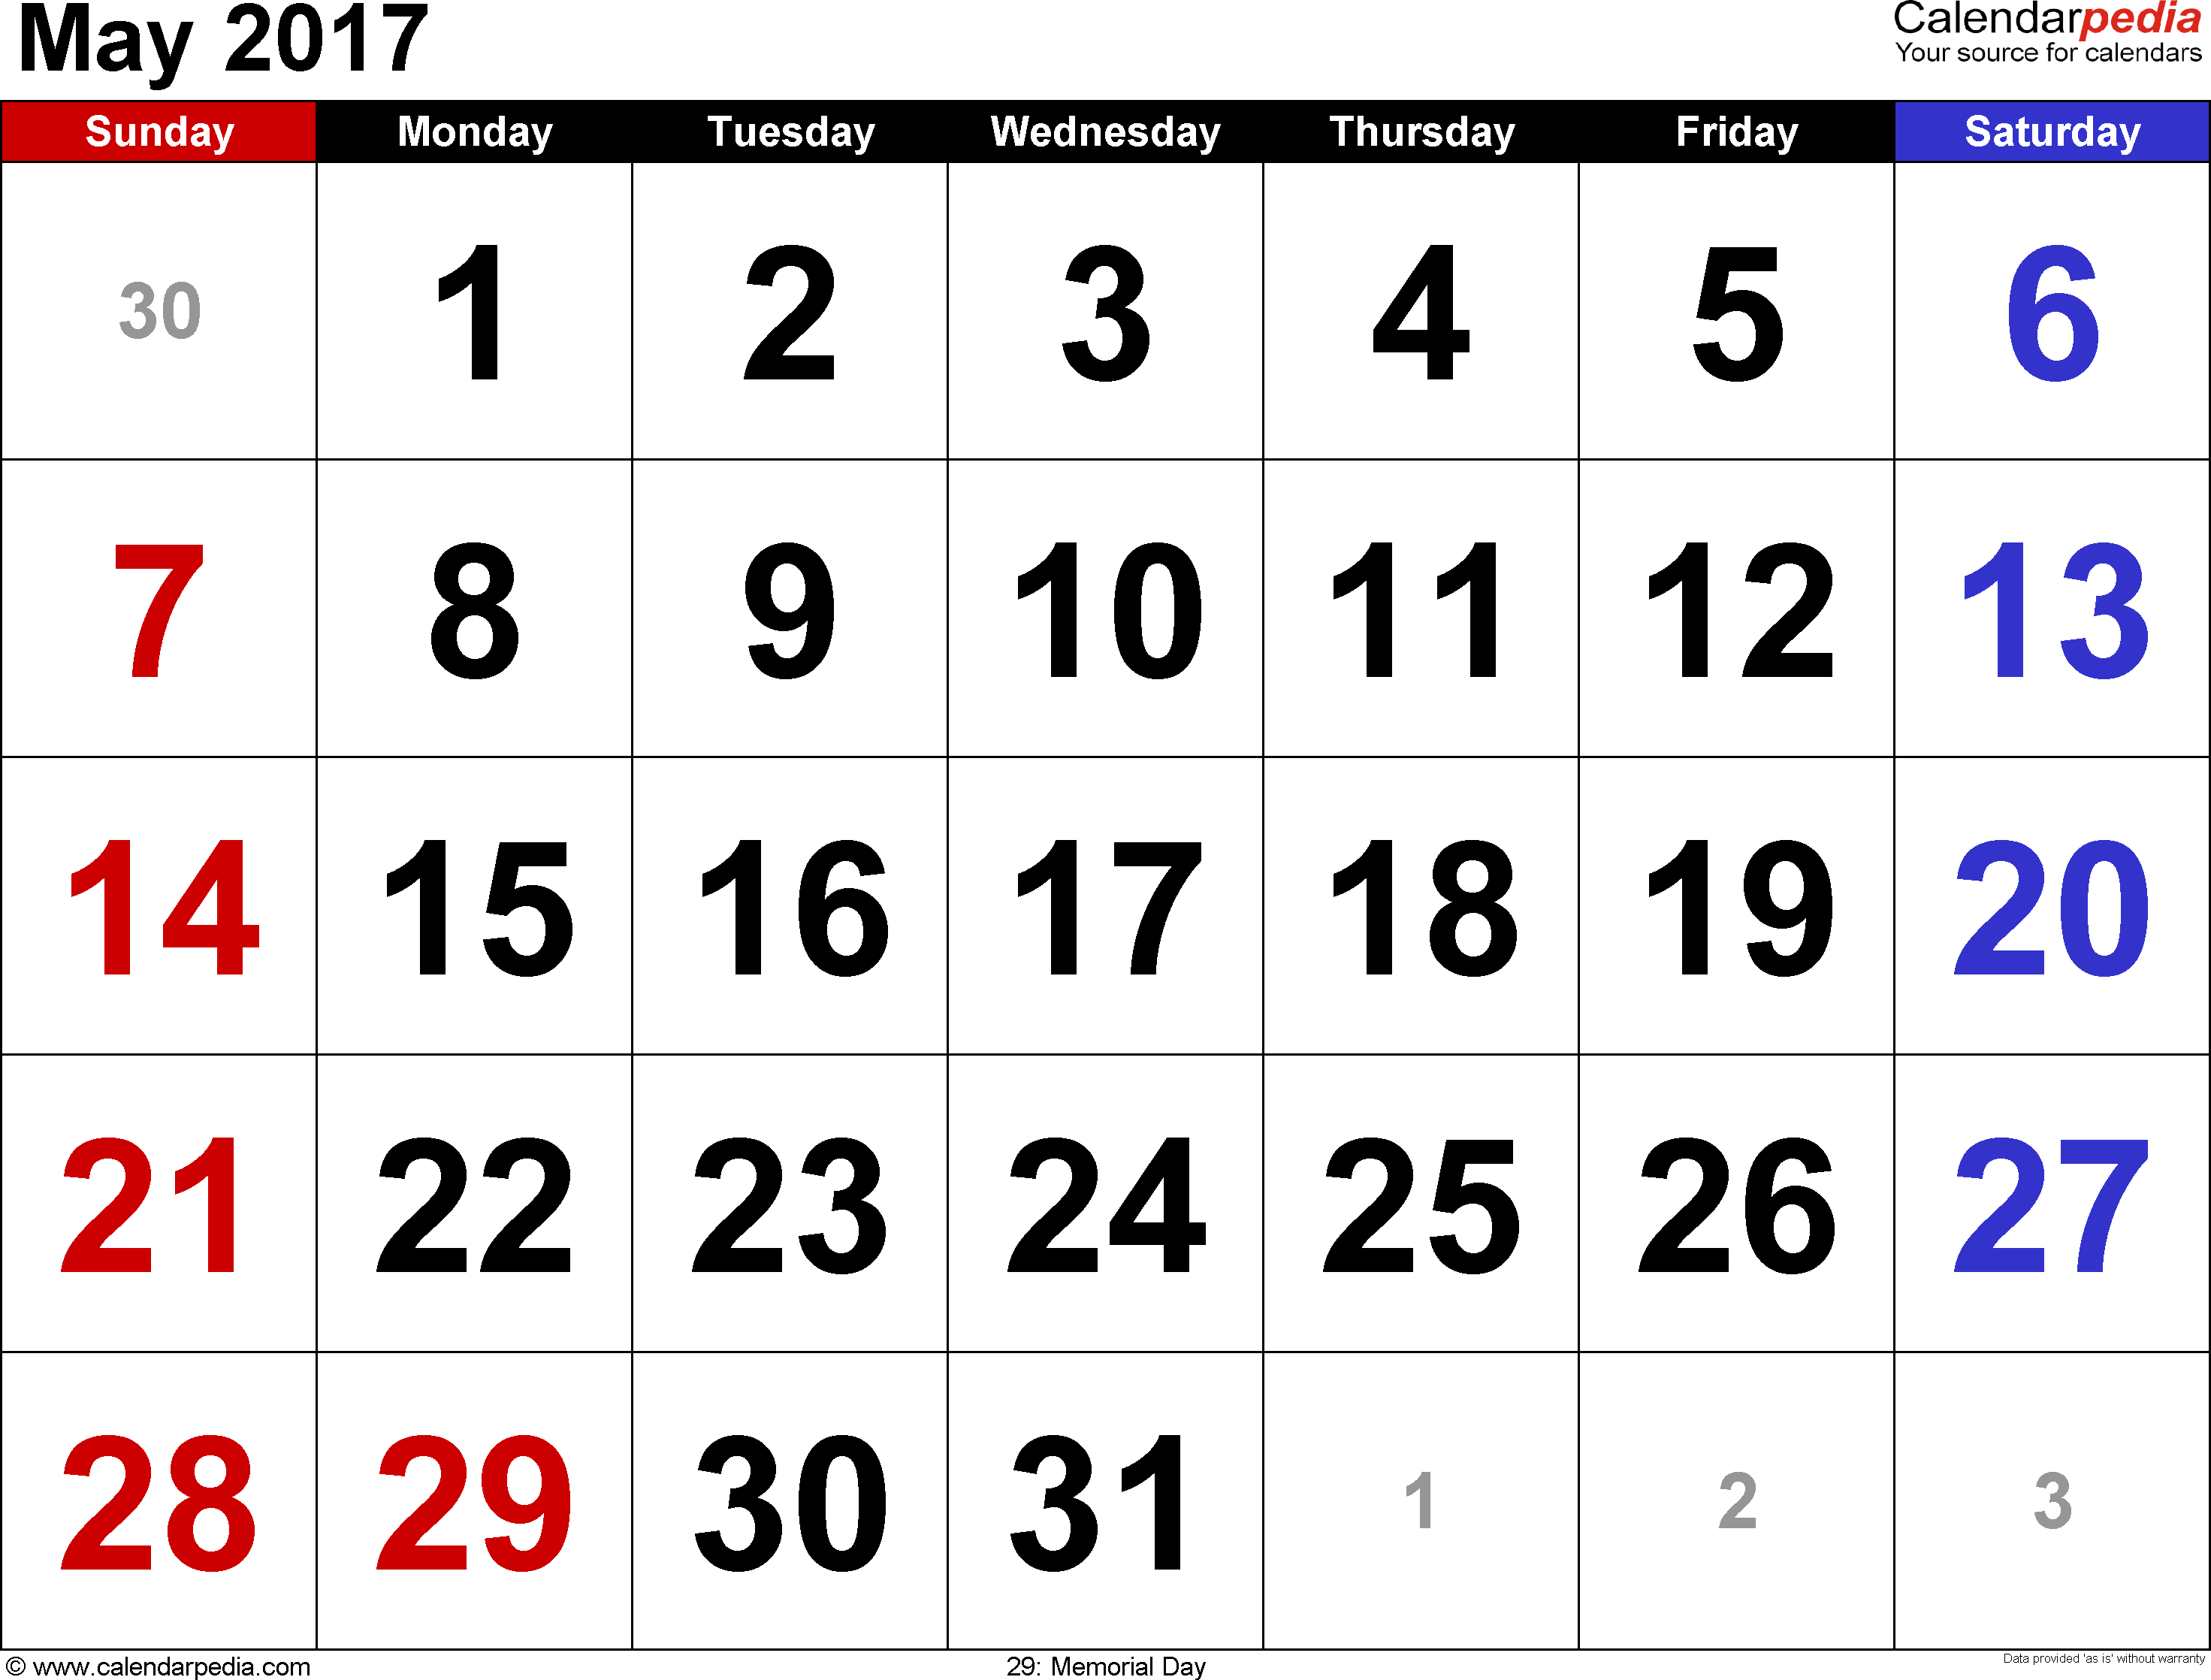 May 2017 calendar, landscape orientation, large numerals, available as printable templates for Word, Excel and PDF